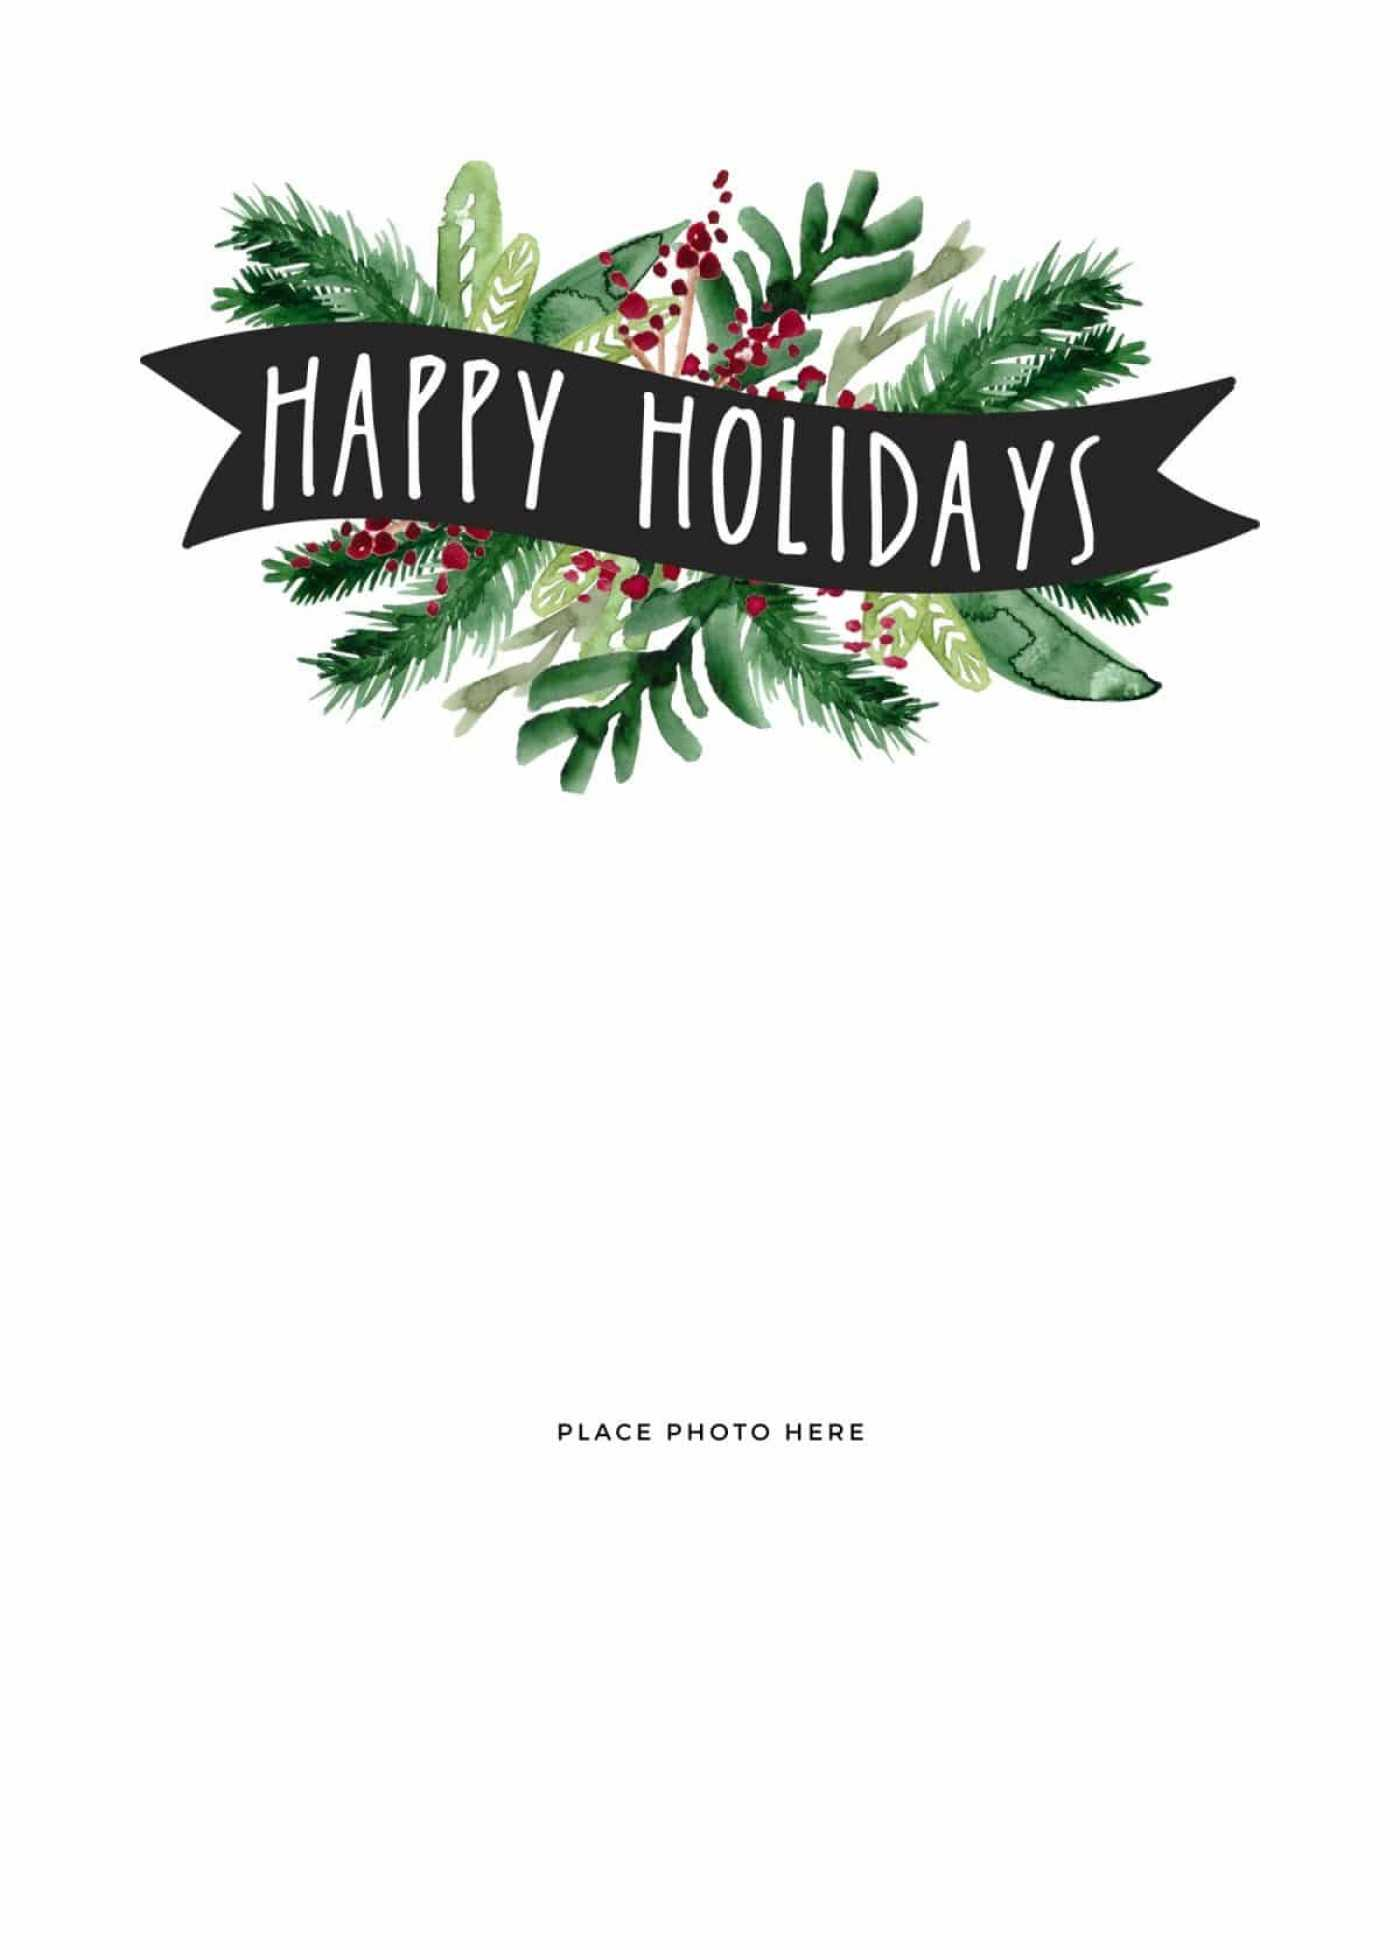 027 Template Ideas Free Holiday Card Templates For Photoshop With Happy Holidays Card Template